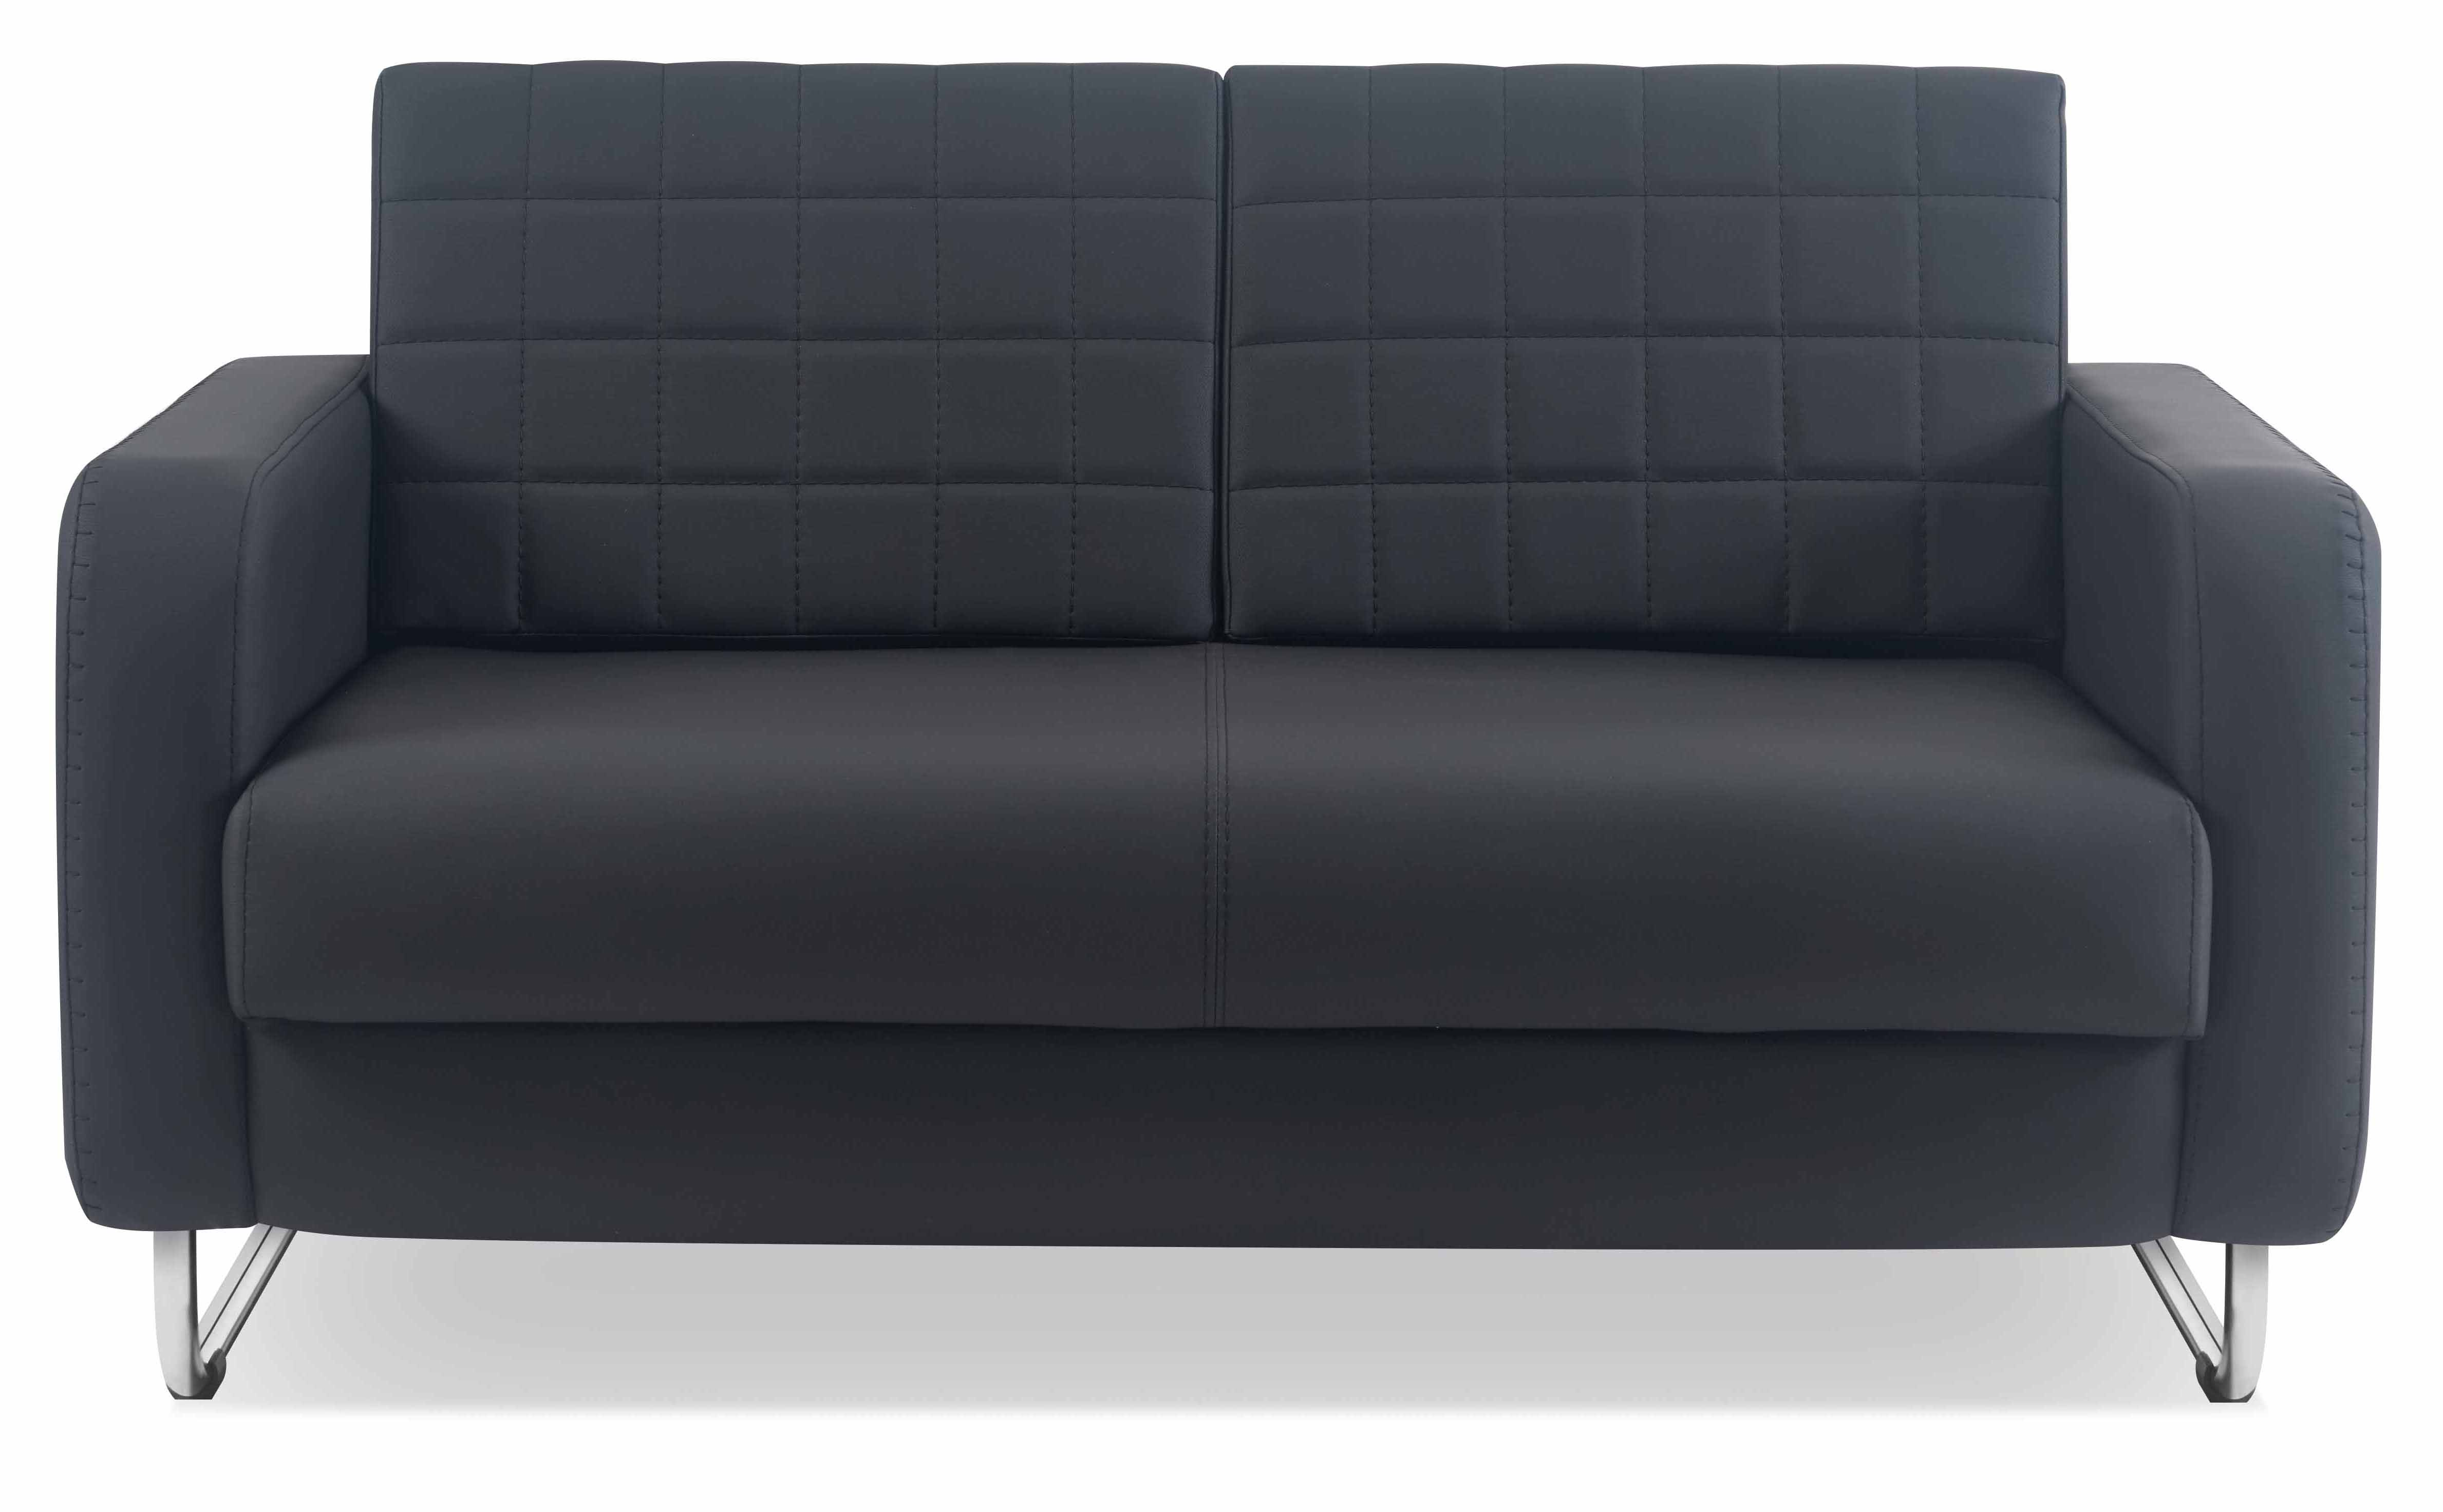 karmen sitzgruppe aus sofa und 2 sesseln in schwarz g nstig m bel star. Black Bedroom Furniture Sets. Home Design Ideas